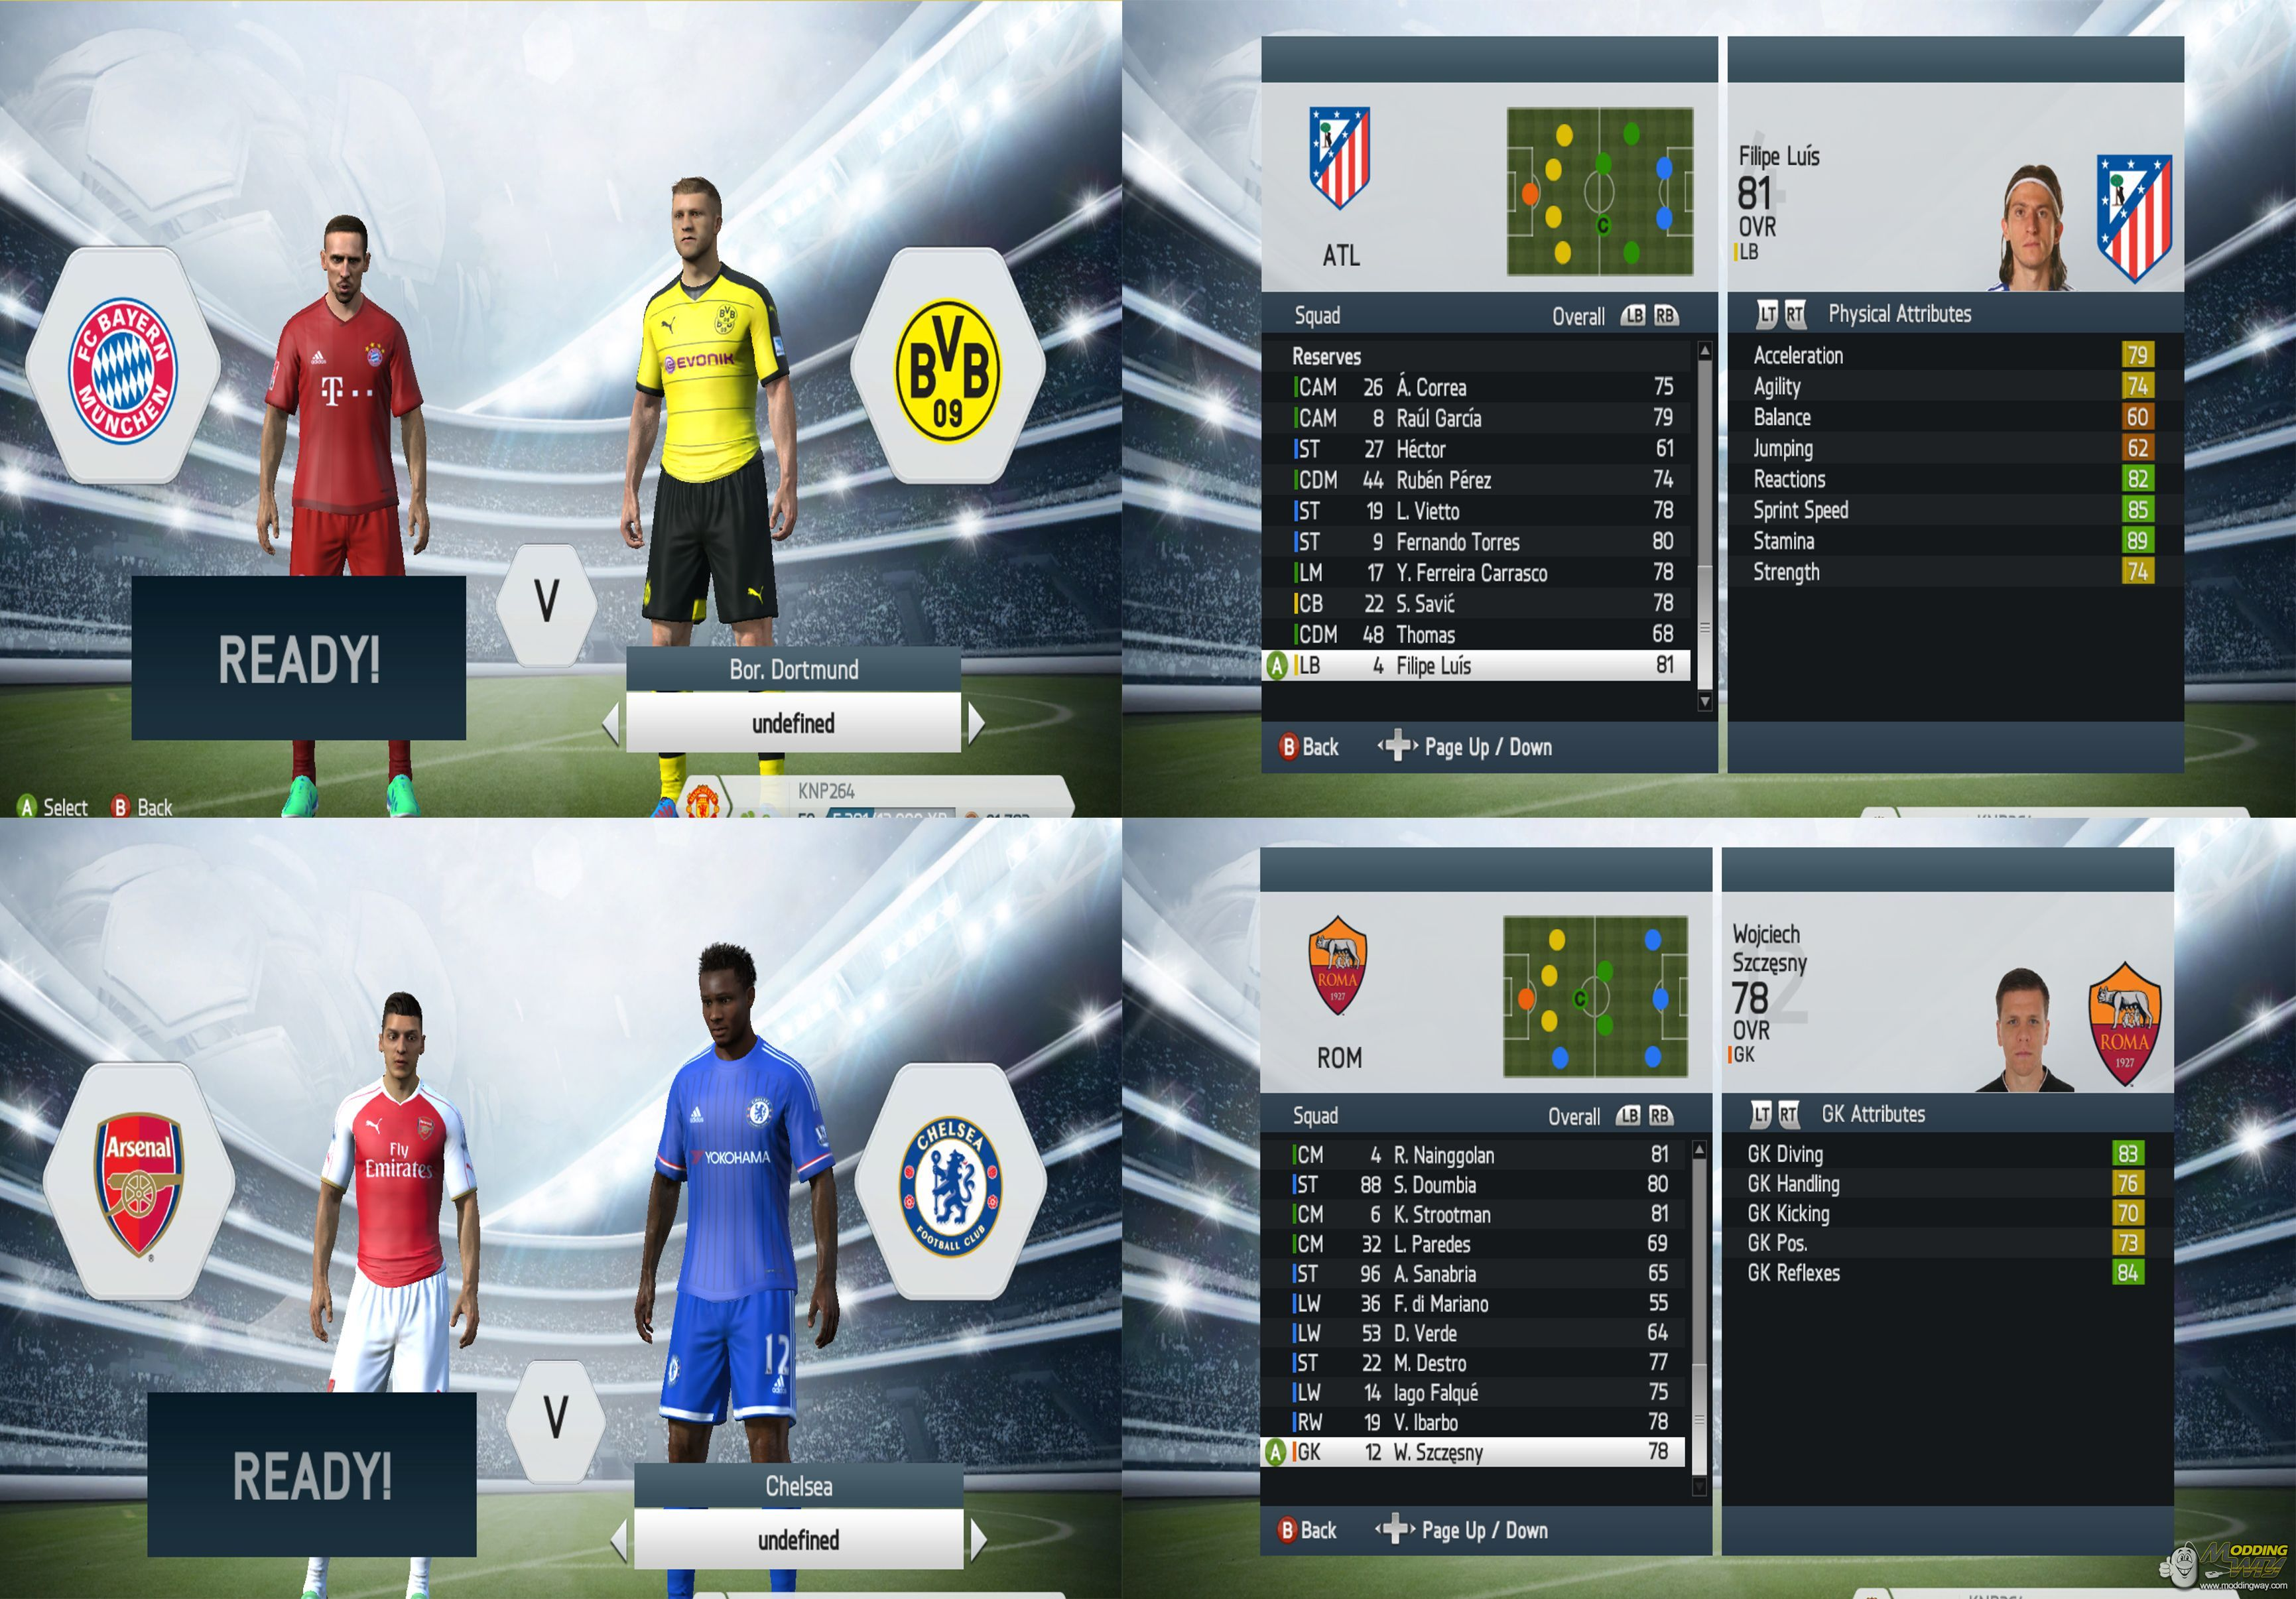 b58c168ed Database with Summer transfers 15 16 (Update 5.0) - FIFA 14 at ModdingWay